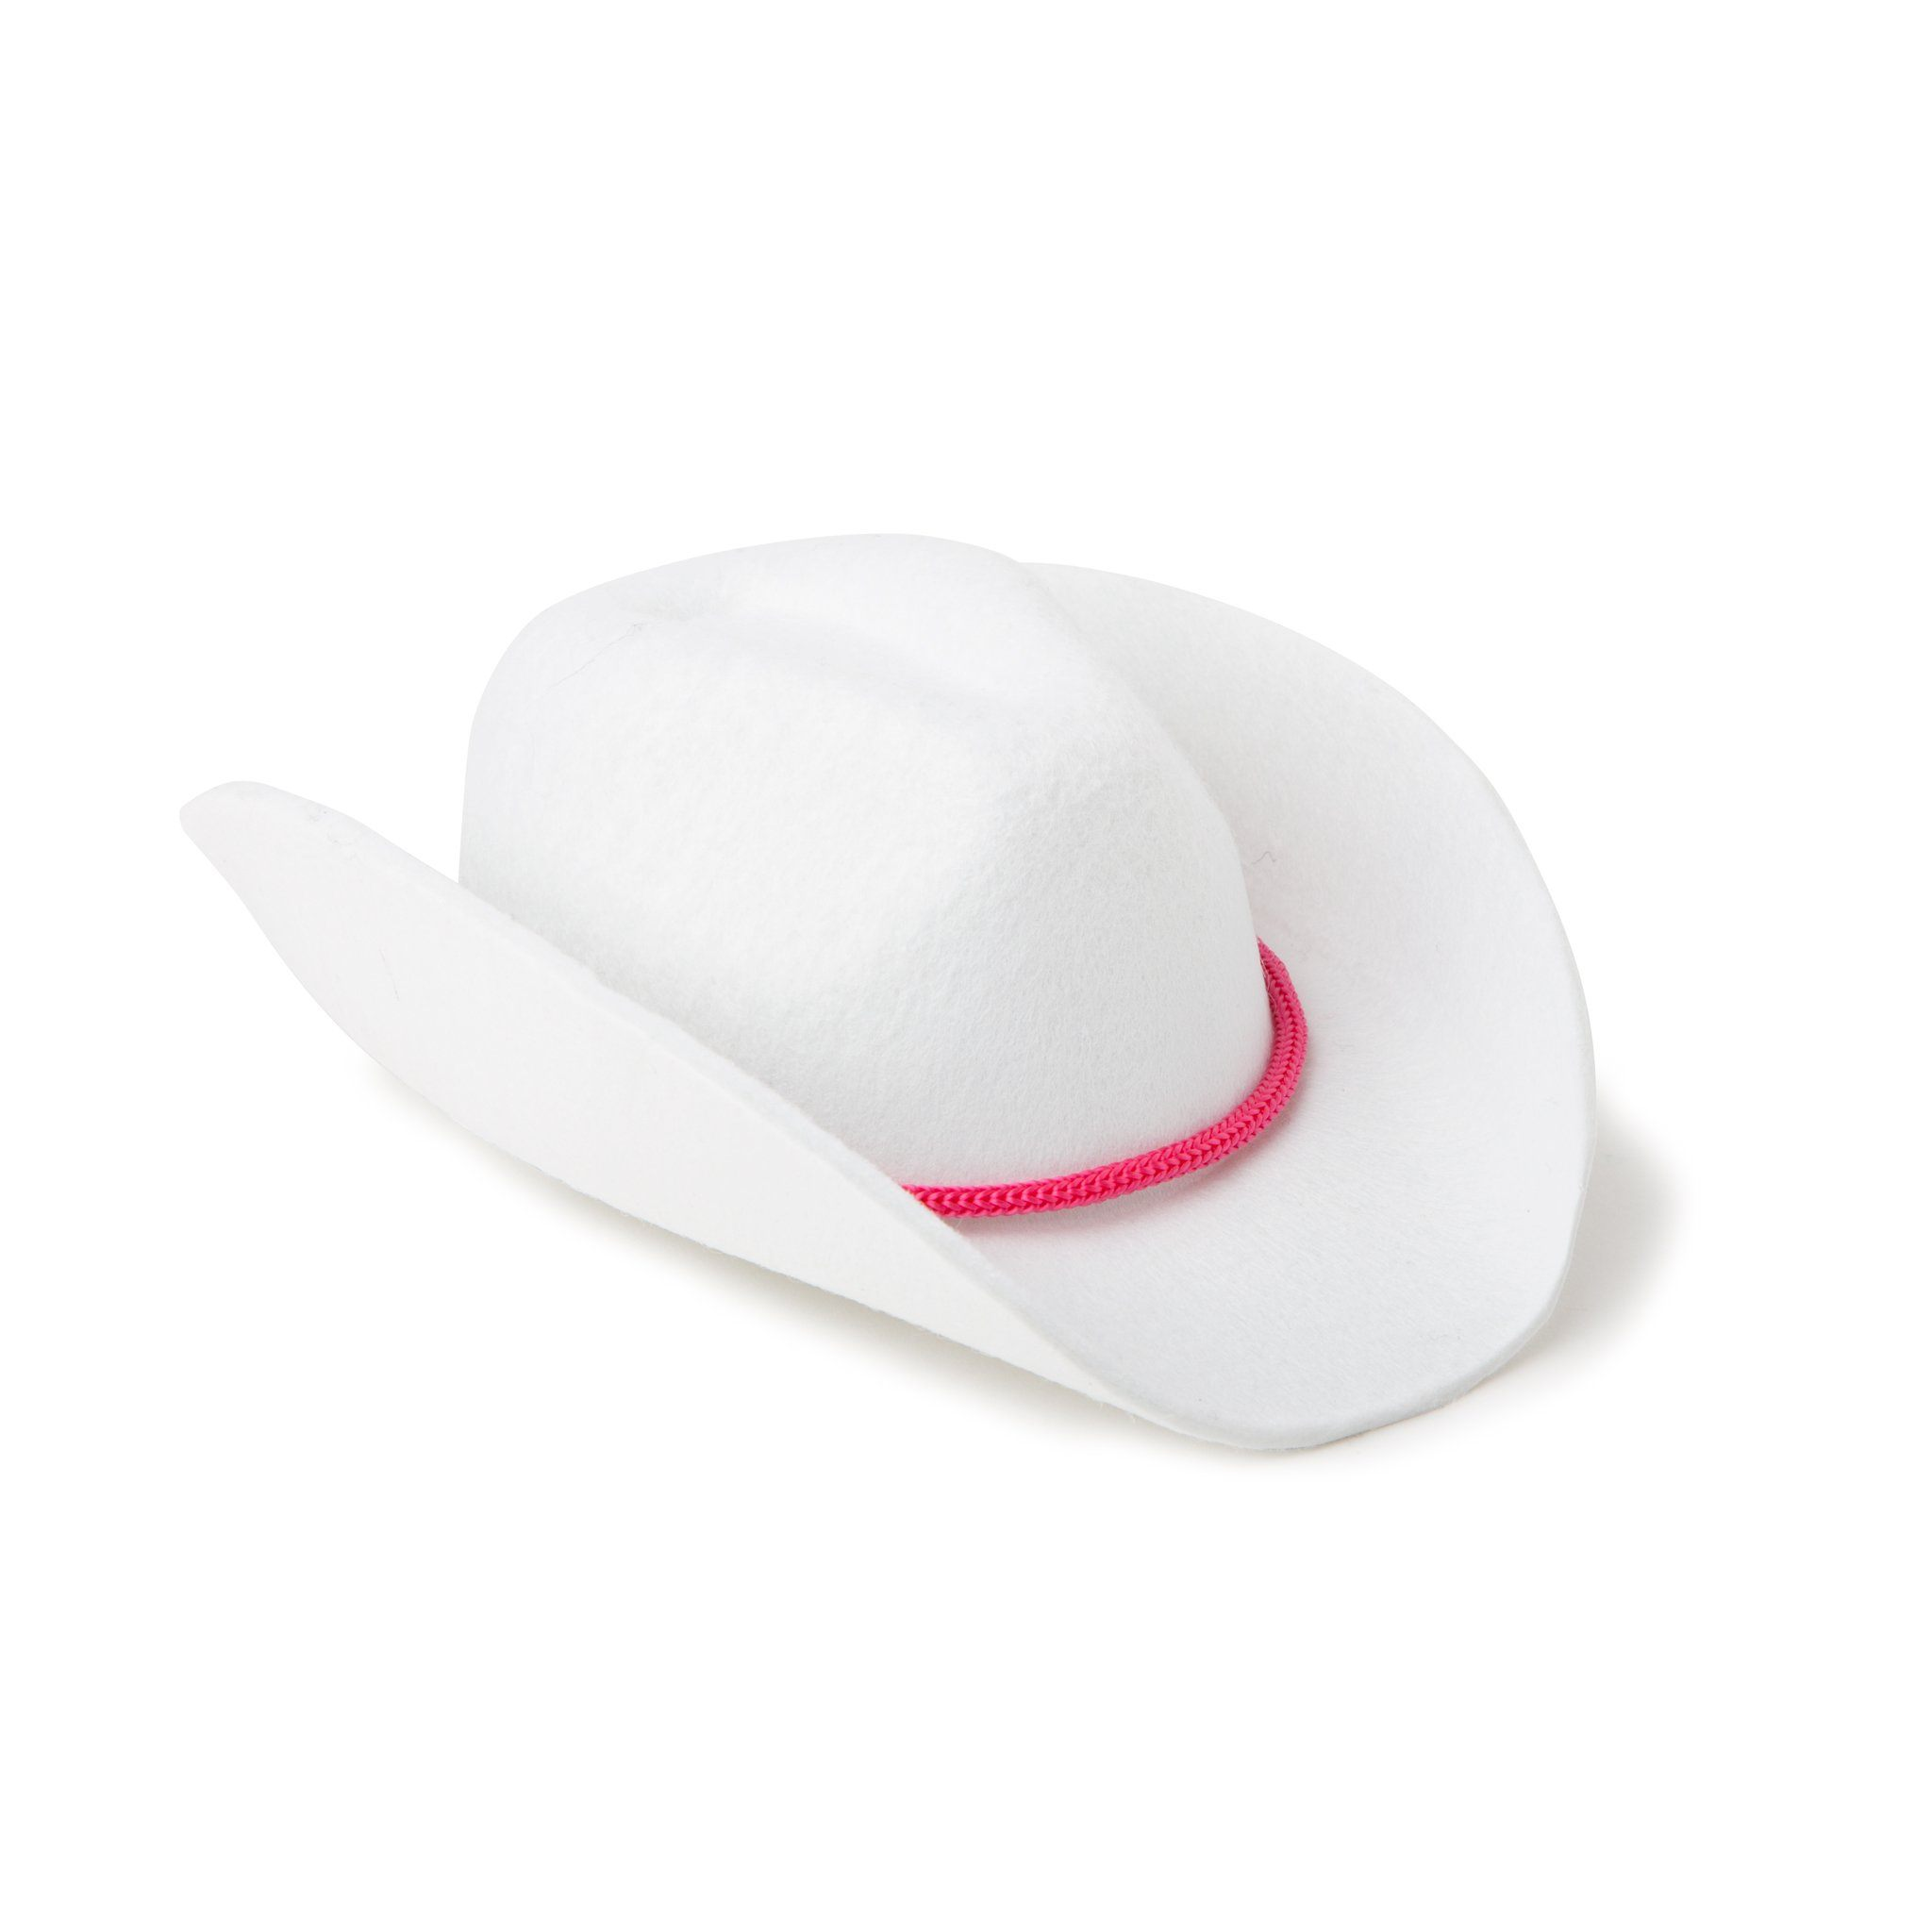 Stampede Style white cowboy hat with pink trim fits all 18 inch dolls.